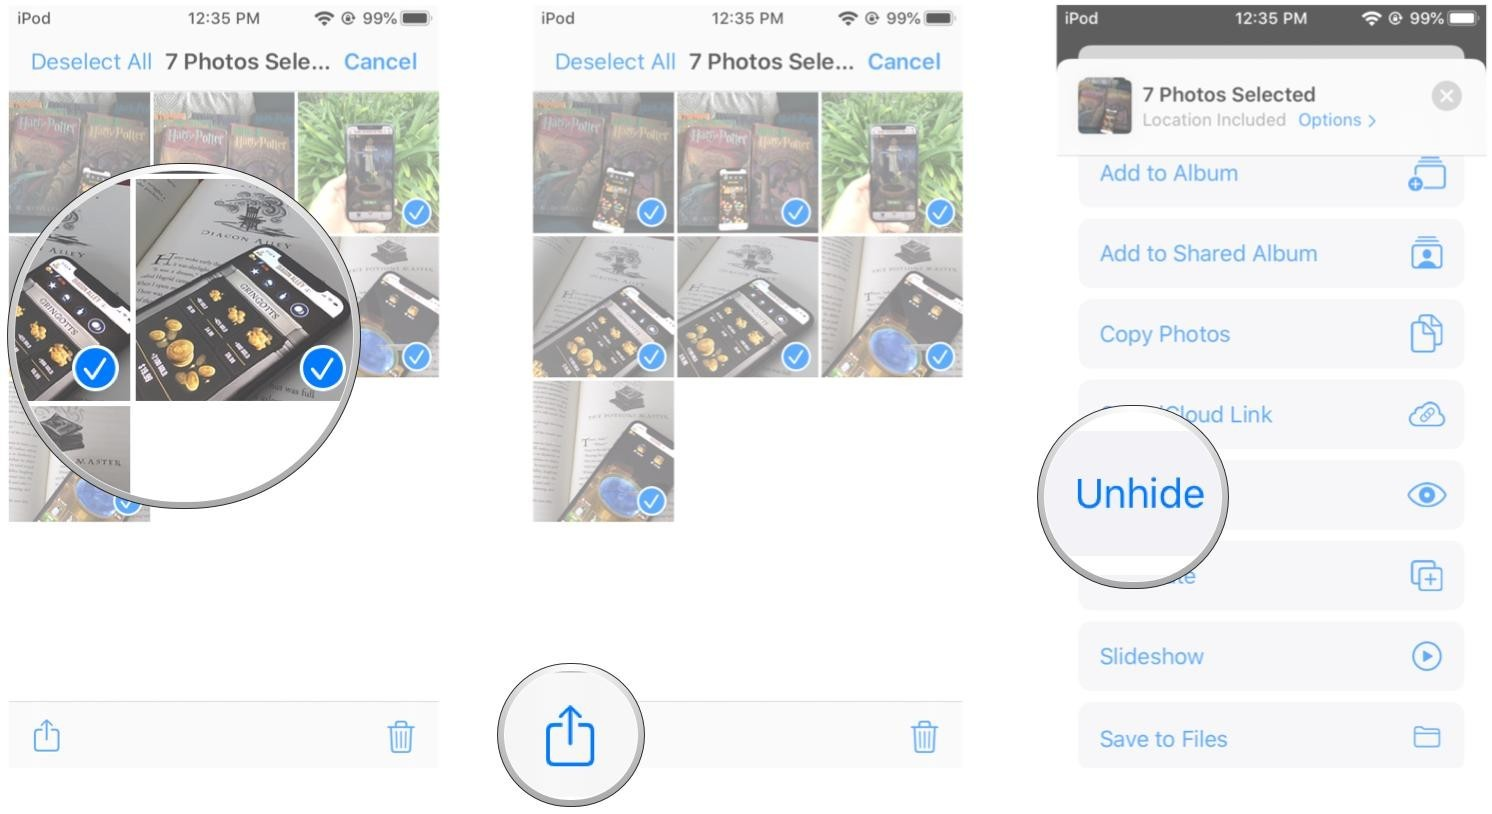 How to hide images in the Photos app on iPhone and iPad | iMore